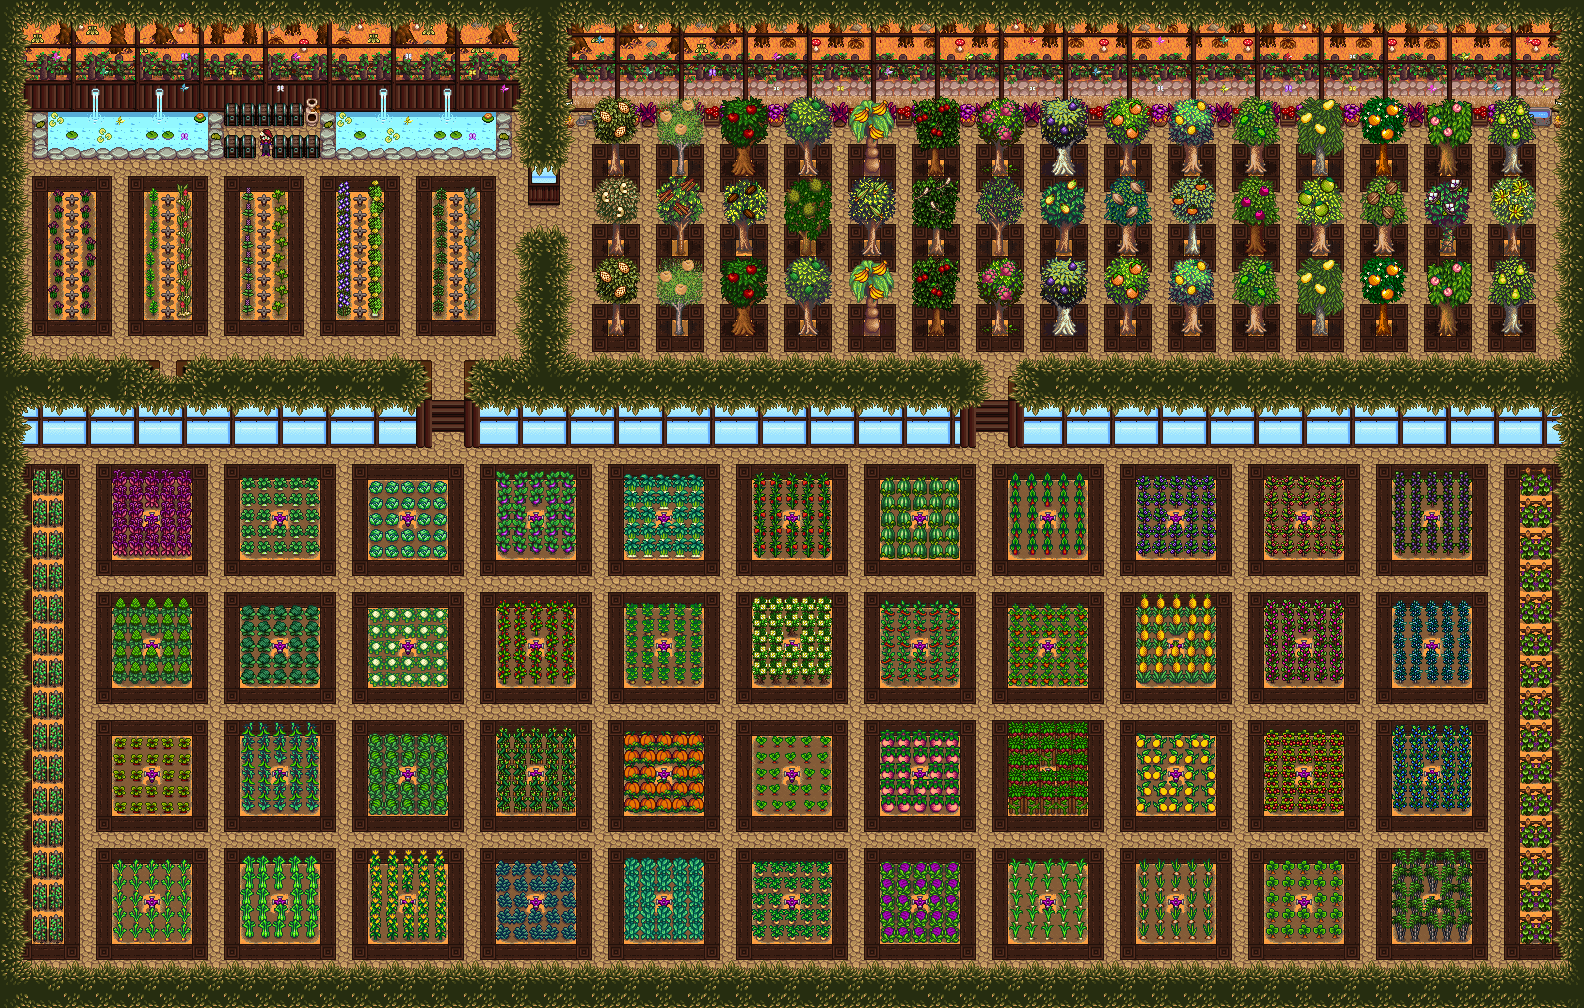 Fruit Trees How To Plant Fruit Trees Stardew Valley